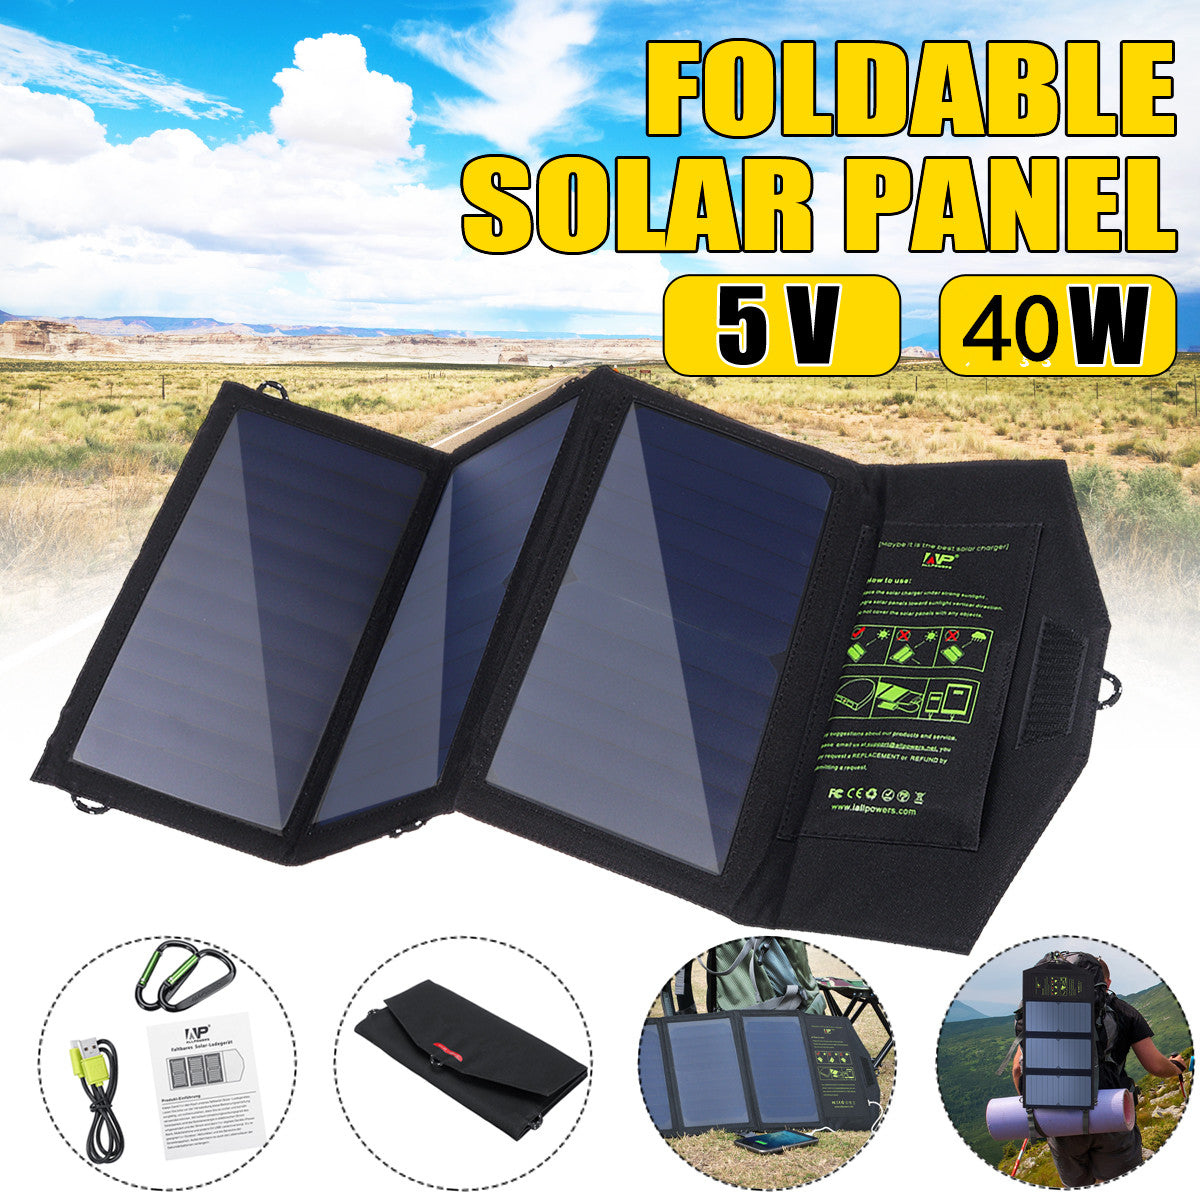 KRXNY 40W Foldable Solar Panel Charger Portable Waterproof High Efficiency 5V USB 18V DC Dual Output Charger for Laptop Tablet Cell Phone Camping Hiking